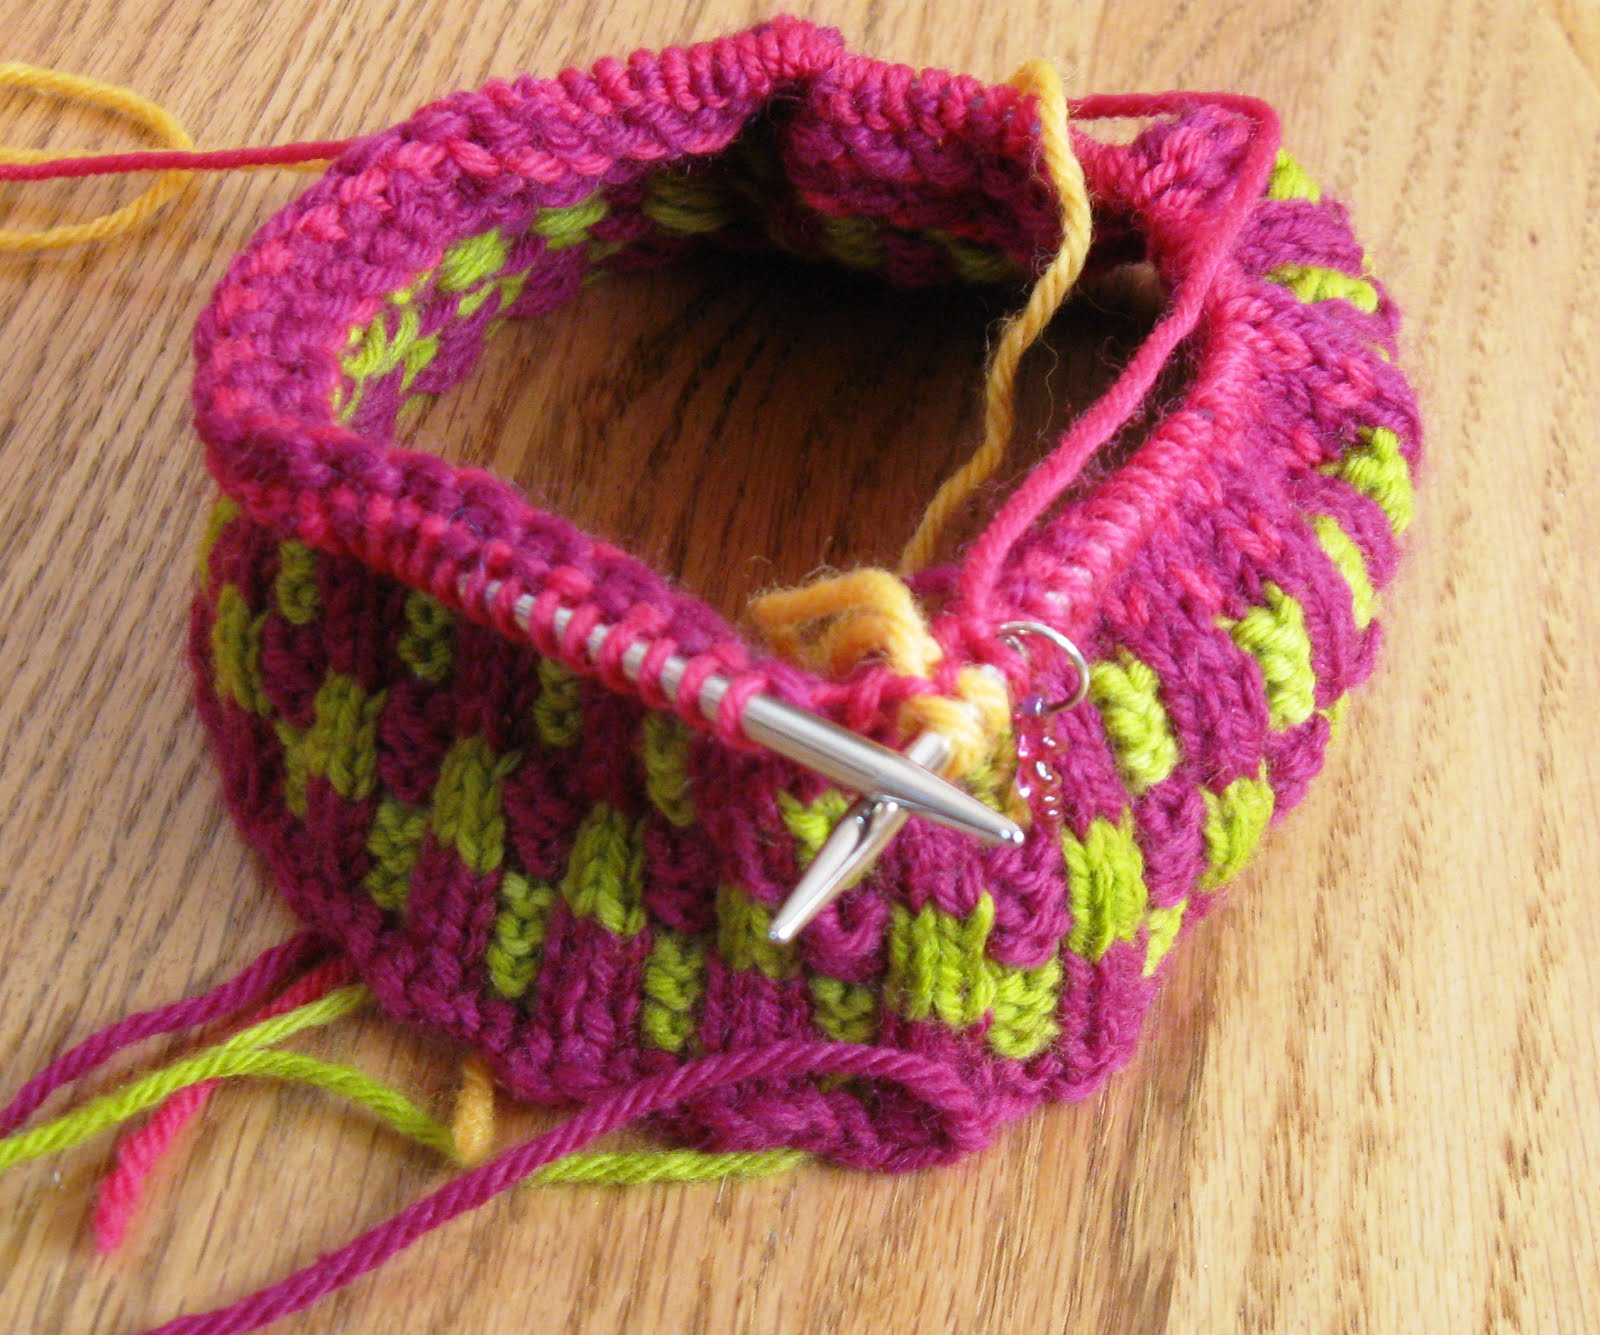 Joining Knitting In The Round Double Pointed Needles : Kiwi knits about knitting needles